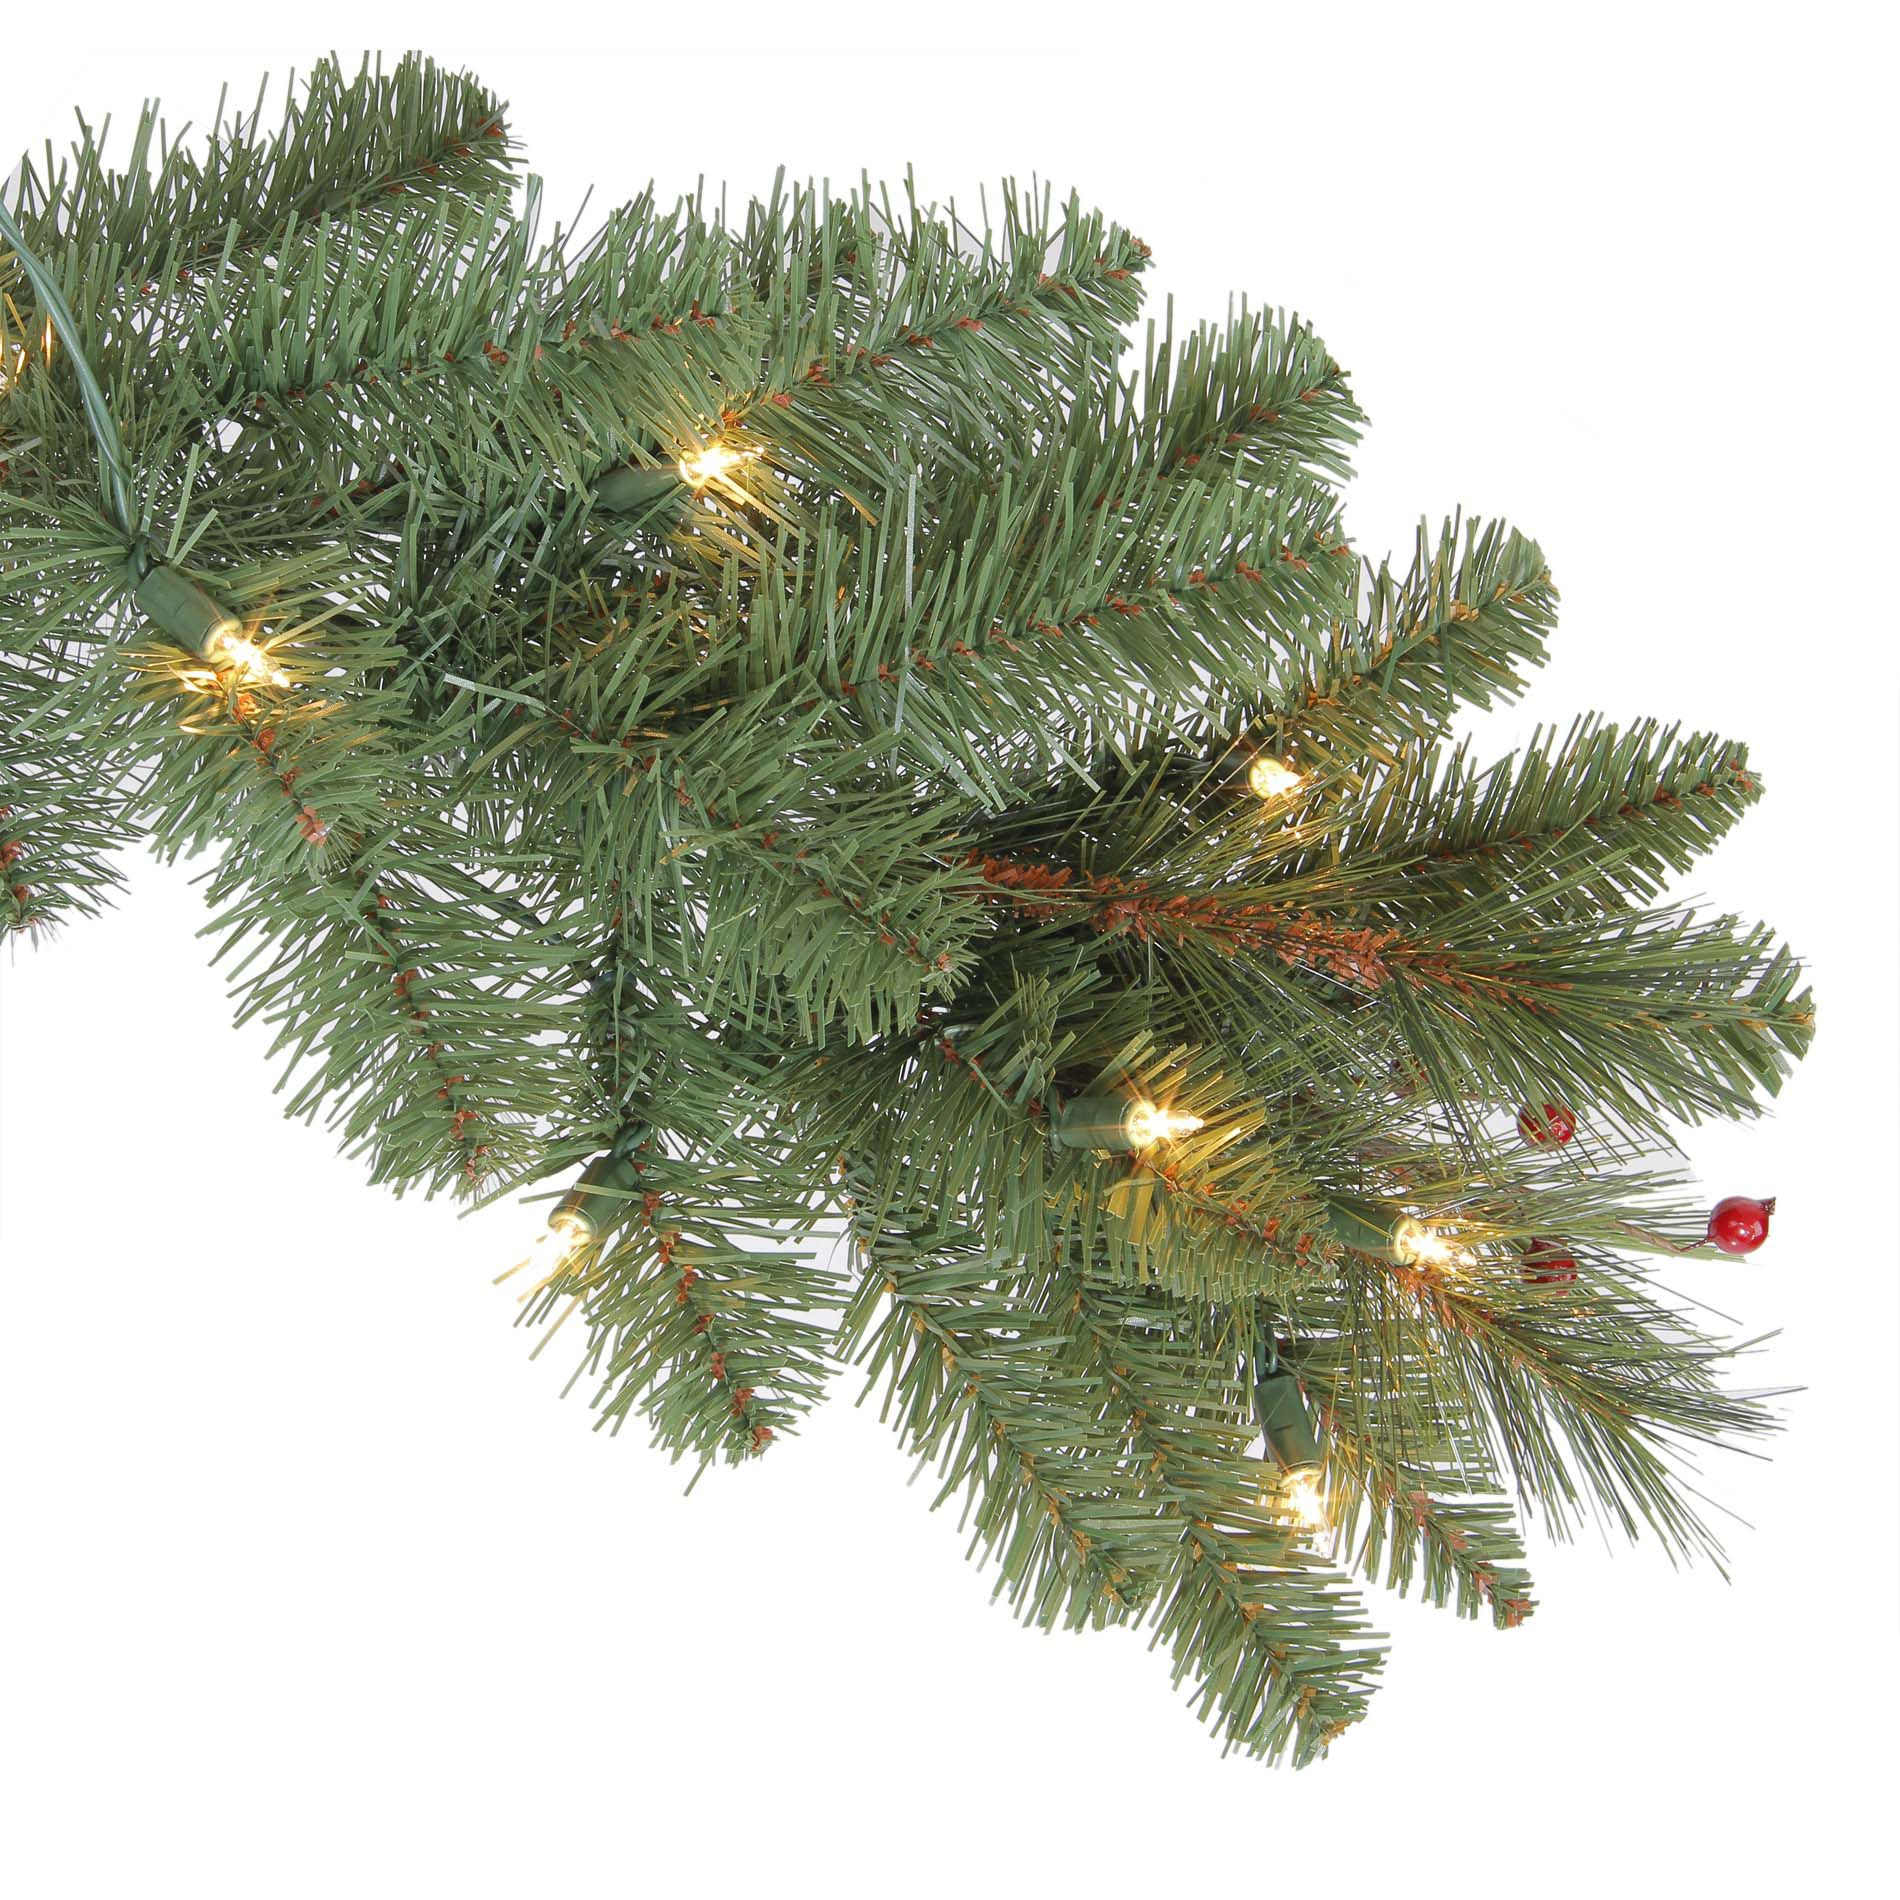 Ty Pennington Style 7.5 Ft Clear Pre-Lit Kensington Artificial Pine Christmas Tree